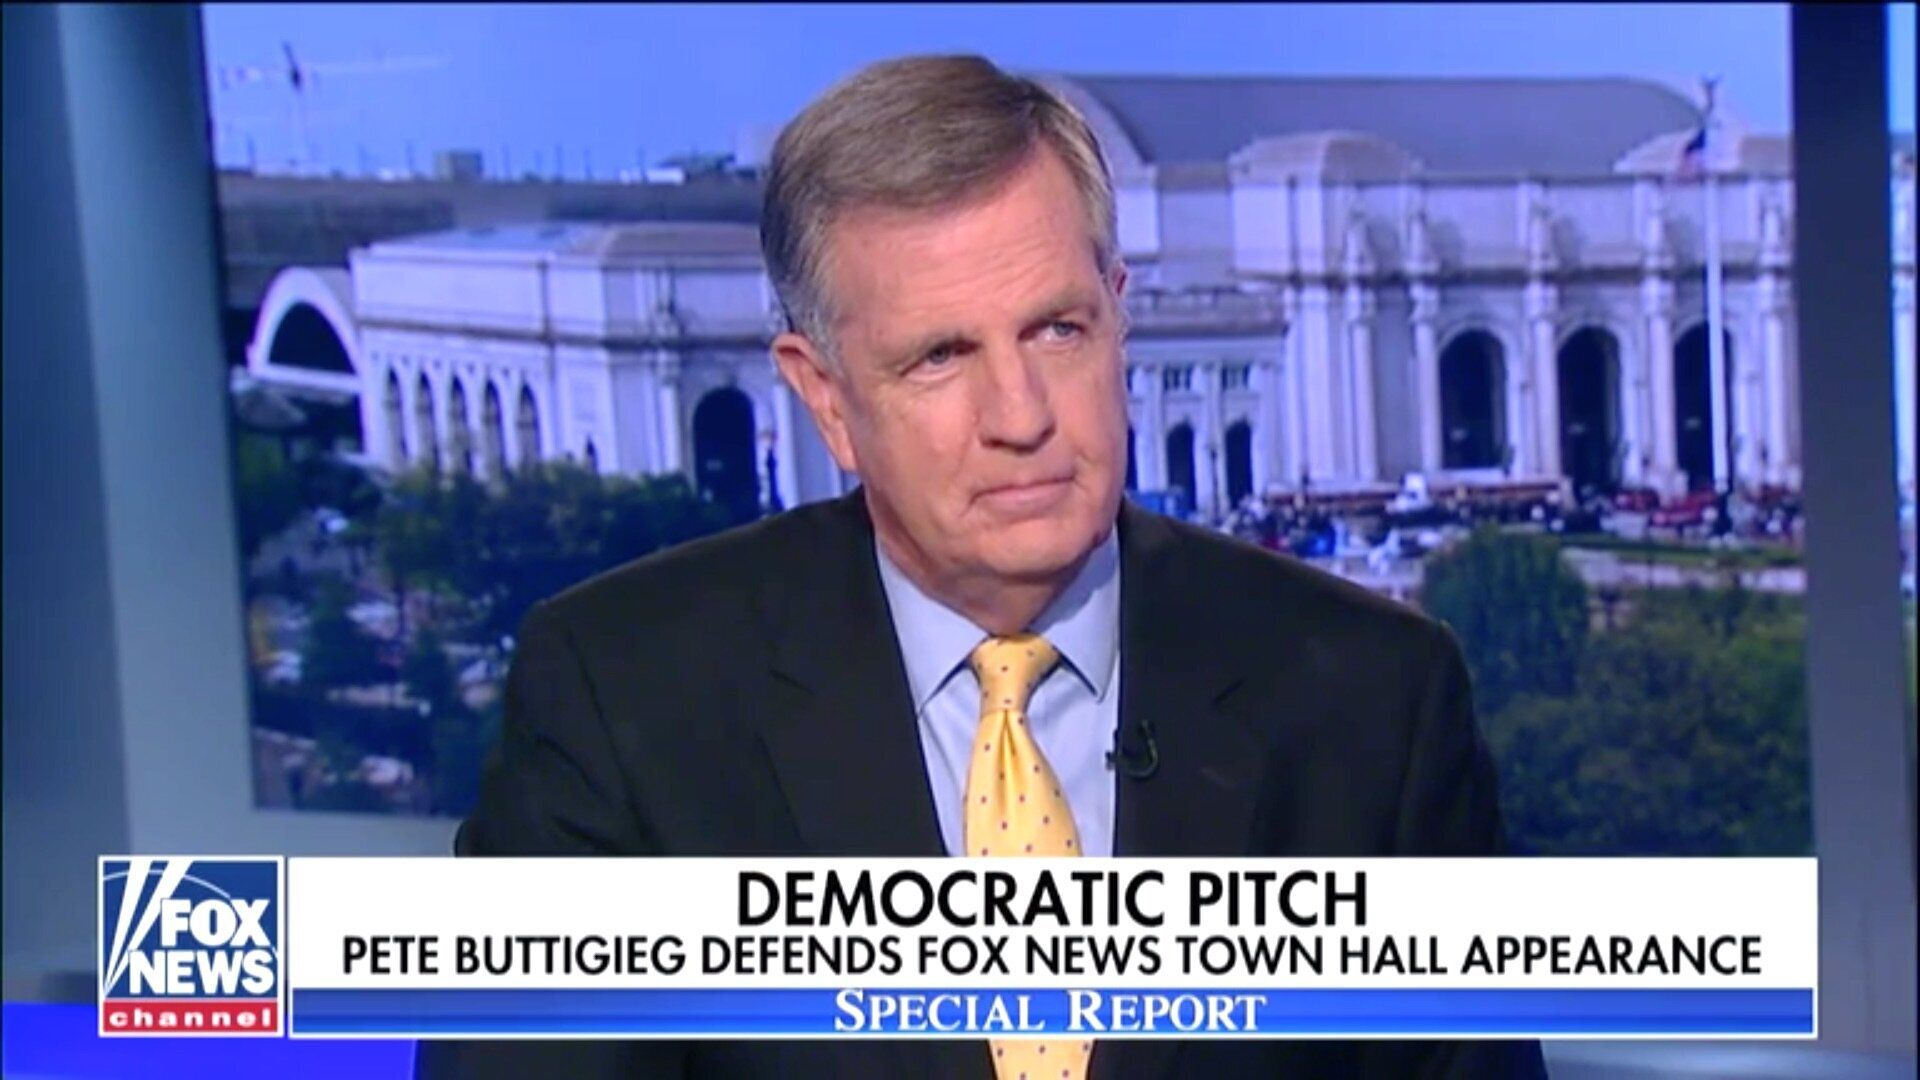 Brit Hume Slams Trump, Praises Democrat Pete Buttigieg's 'Raw Political Talent'